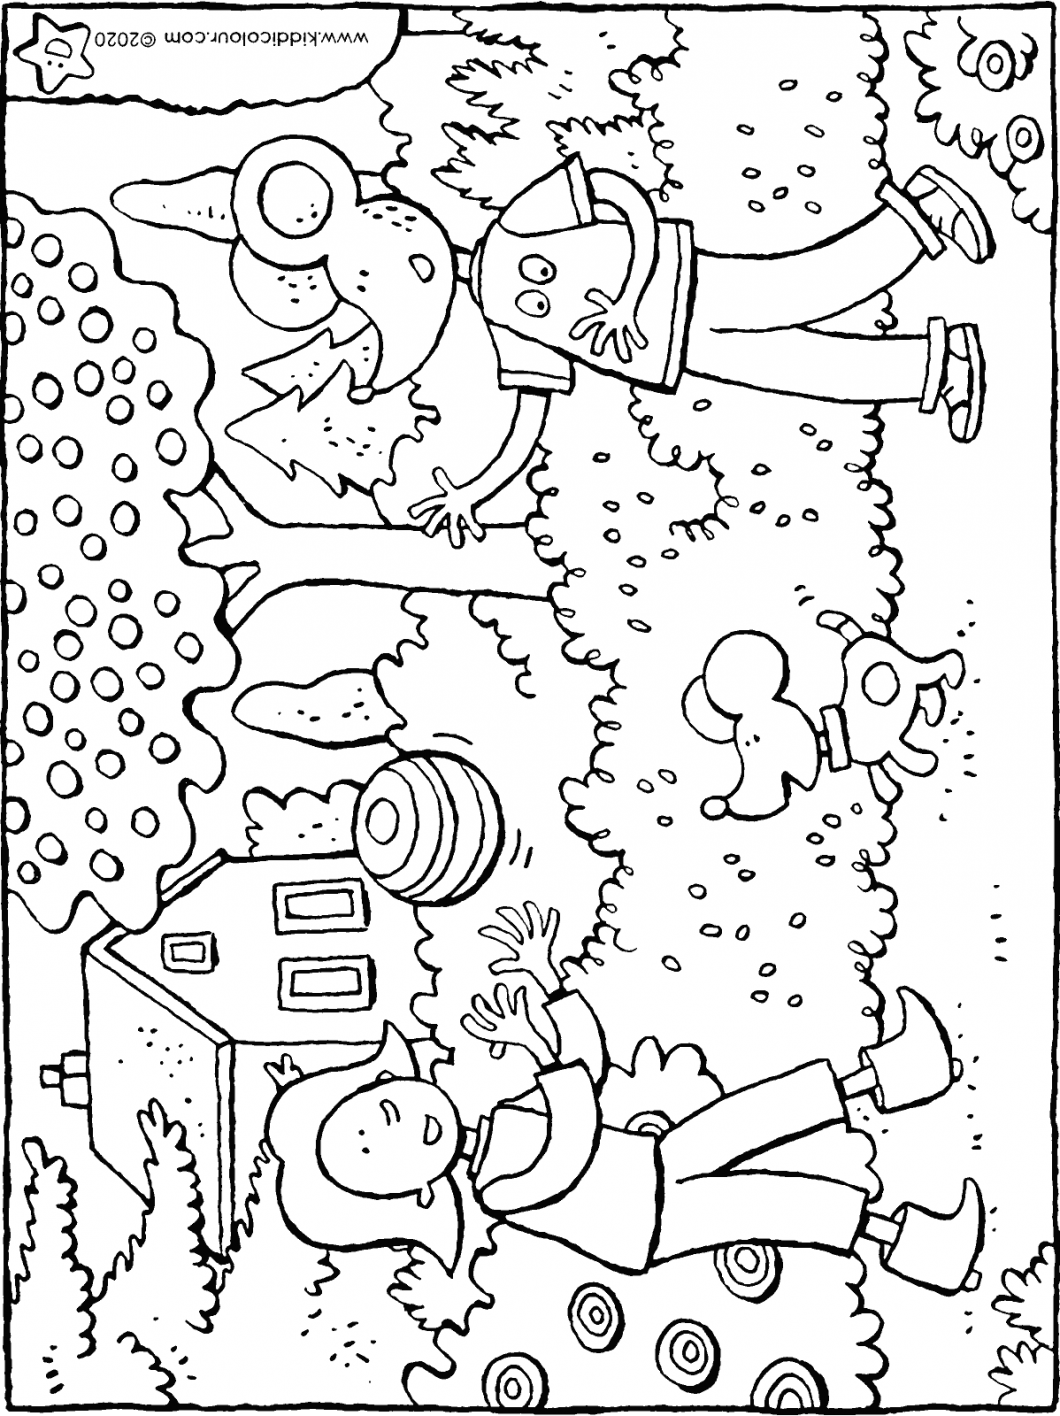 Emma and Thomas play with the ball colouring page drawing picture 01H